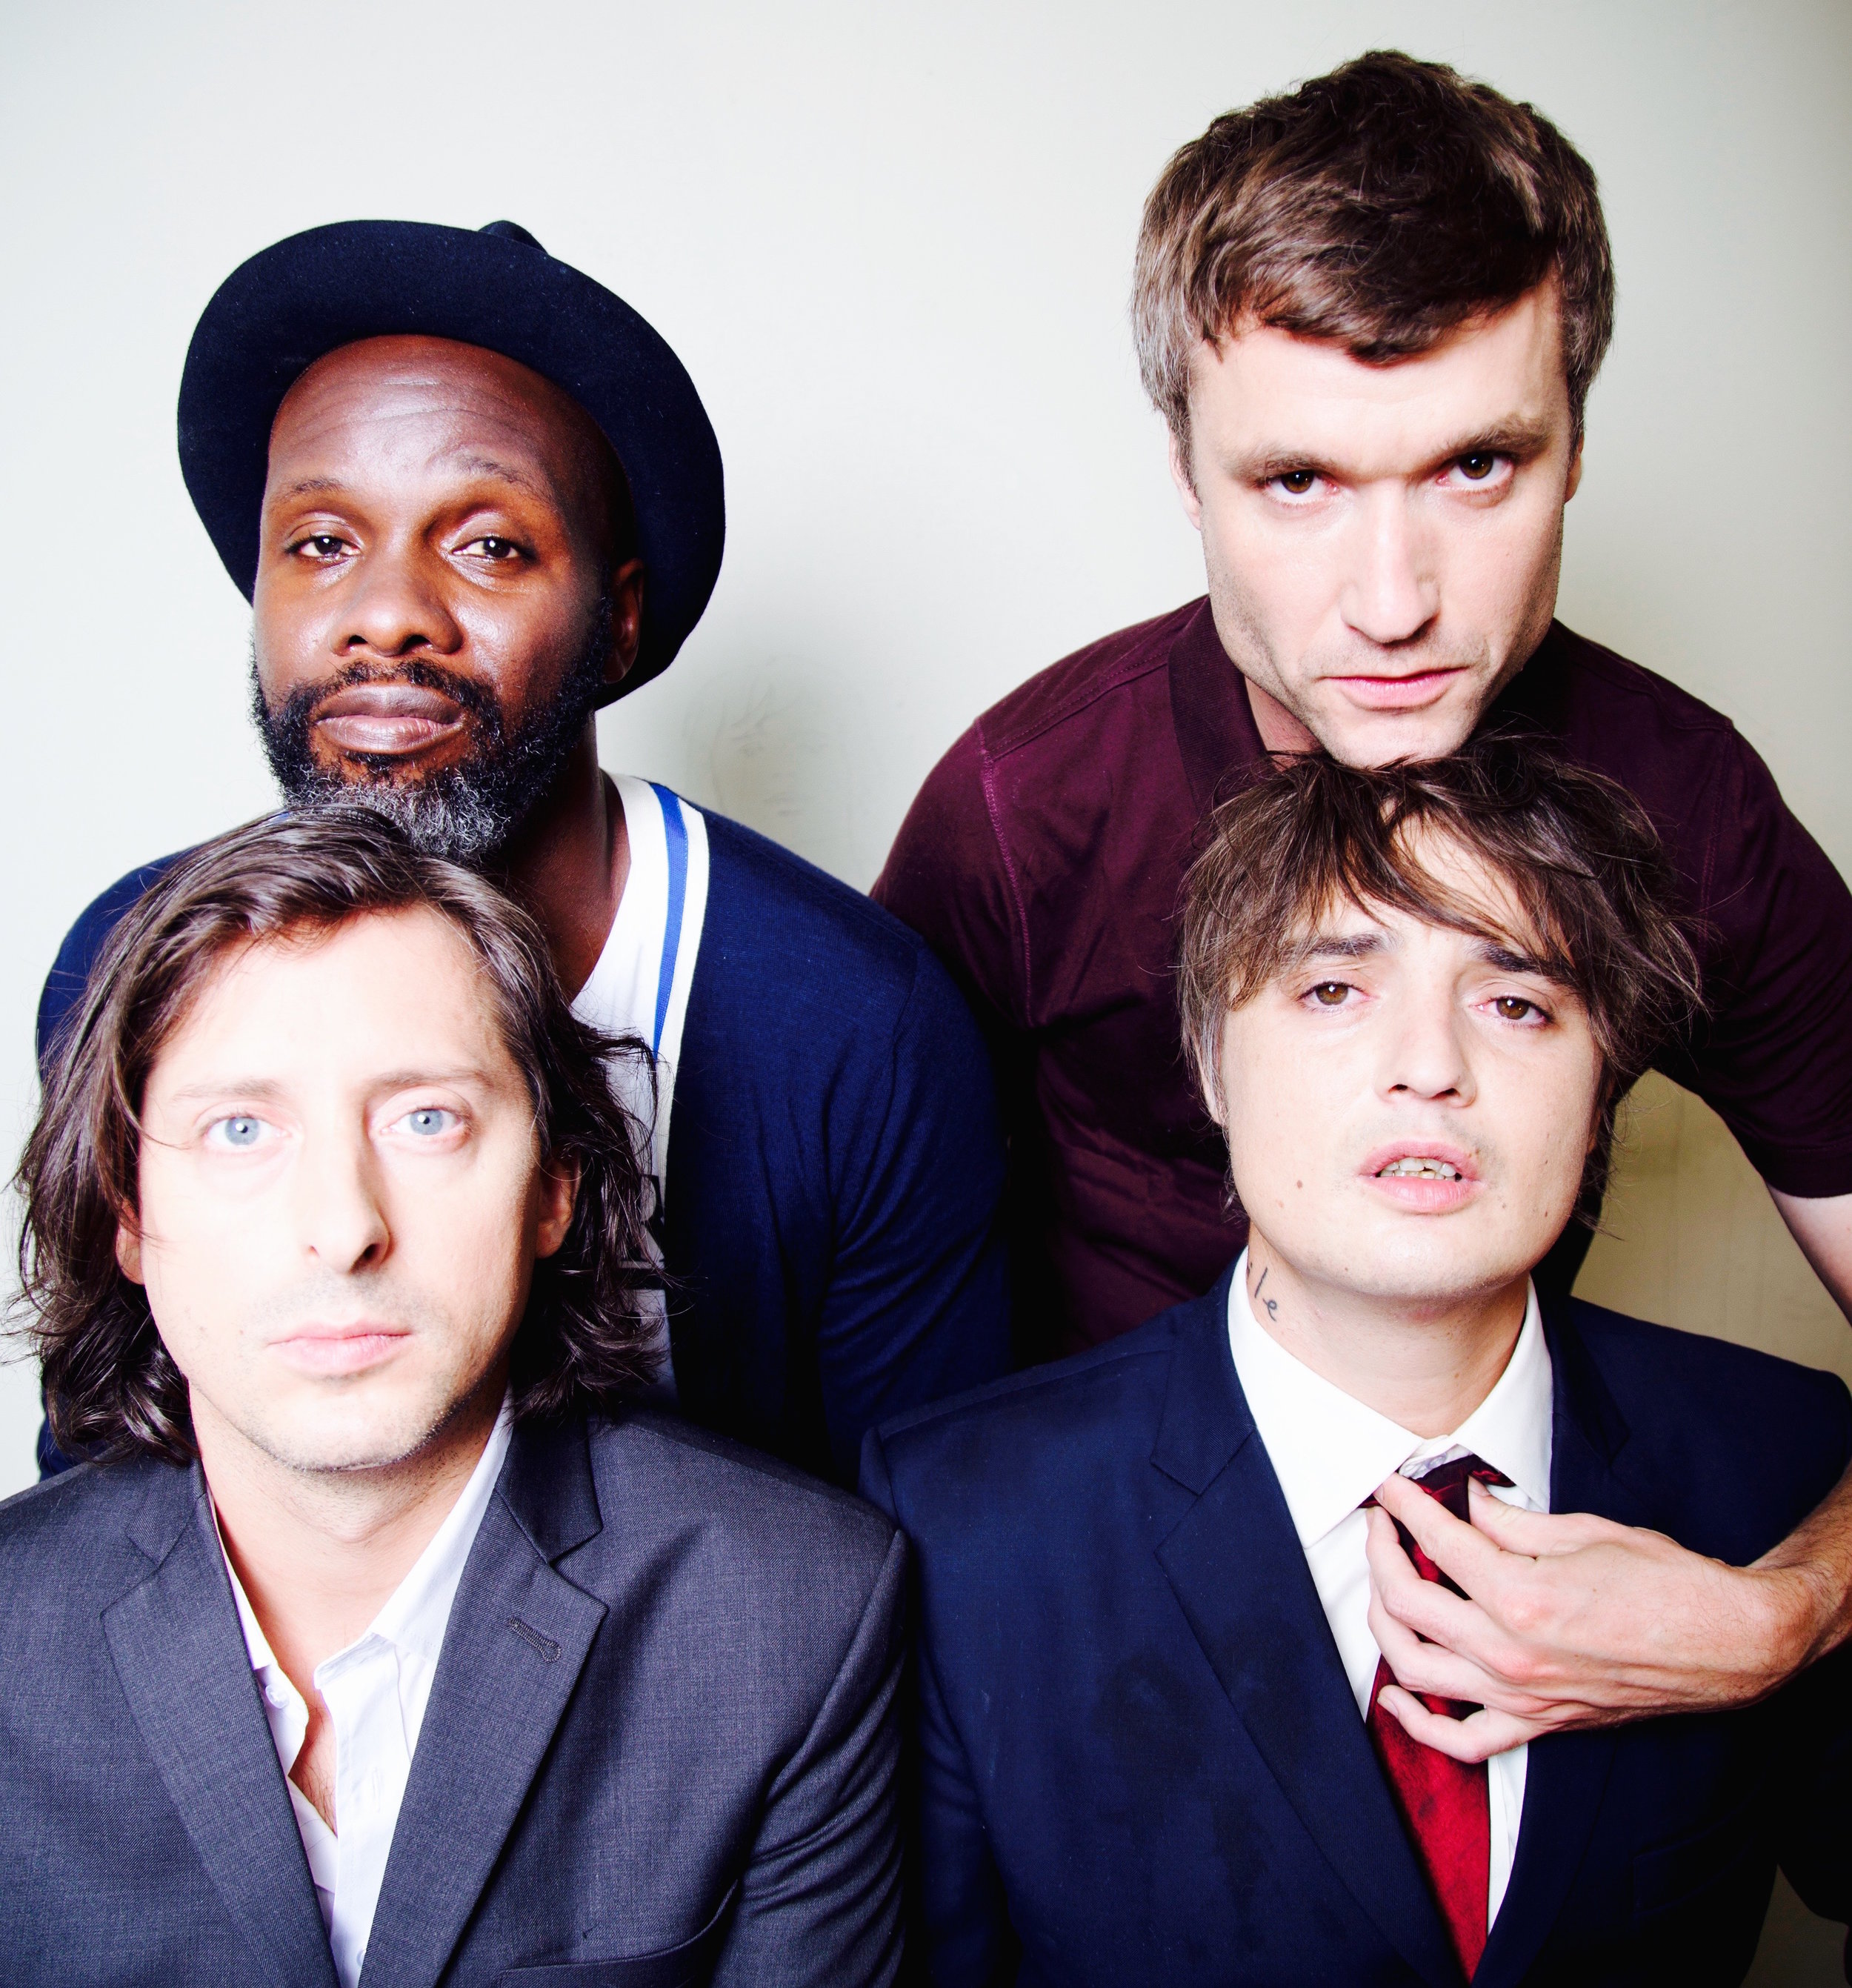 """THE LIBERTINES - Bringing By The Seato a close on Sundaynight will be The Libertines. With a discography full of iconic anthems and the compelling connection between frontmenCarl Barât andPeter Doherty, The Libertines need no introduction.Classics such as 'Time For Heroes','Don't Look Back Into The Sun','Up The Bracket'and 'Can't Stand Me Now'are perfect festival material.Pitchforkonce stated """"A third Libertines album once seemed about as likely as a fifth Smiths LP"""",but the release of their 2015album 'Anthems For Doomed Youth'proved to be an irresistible return to action."""